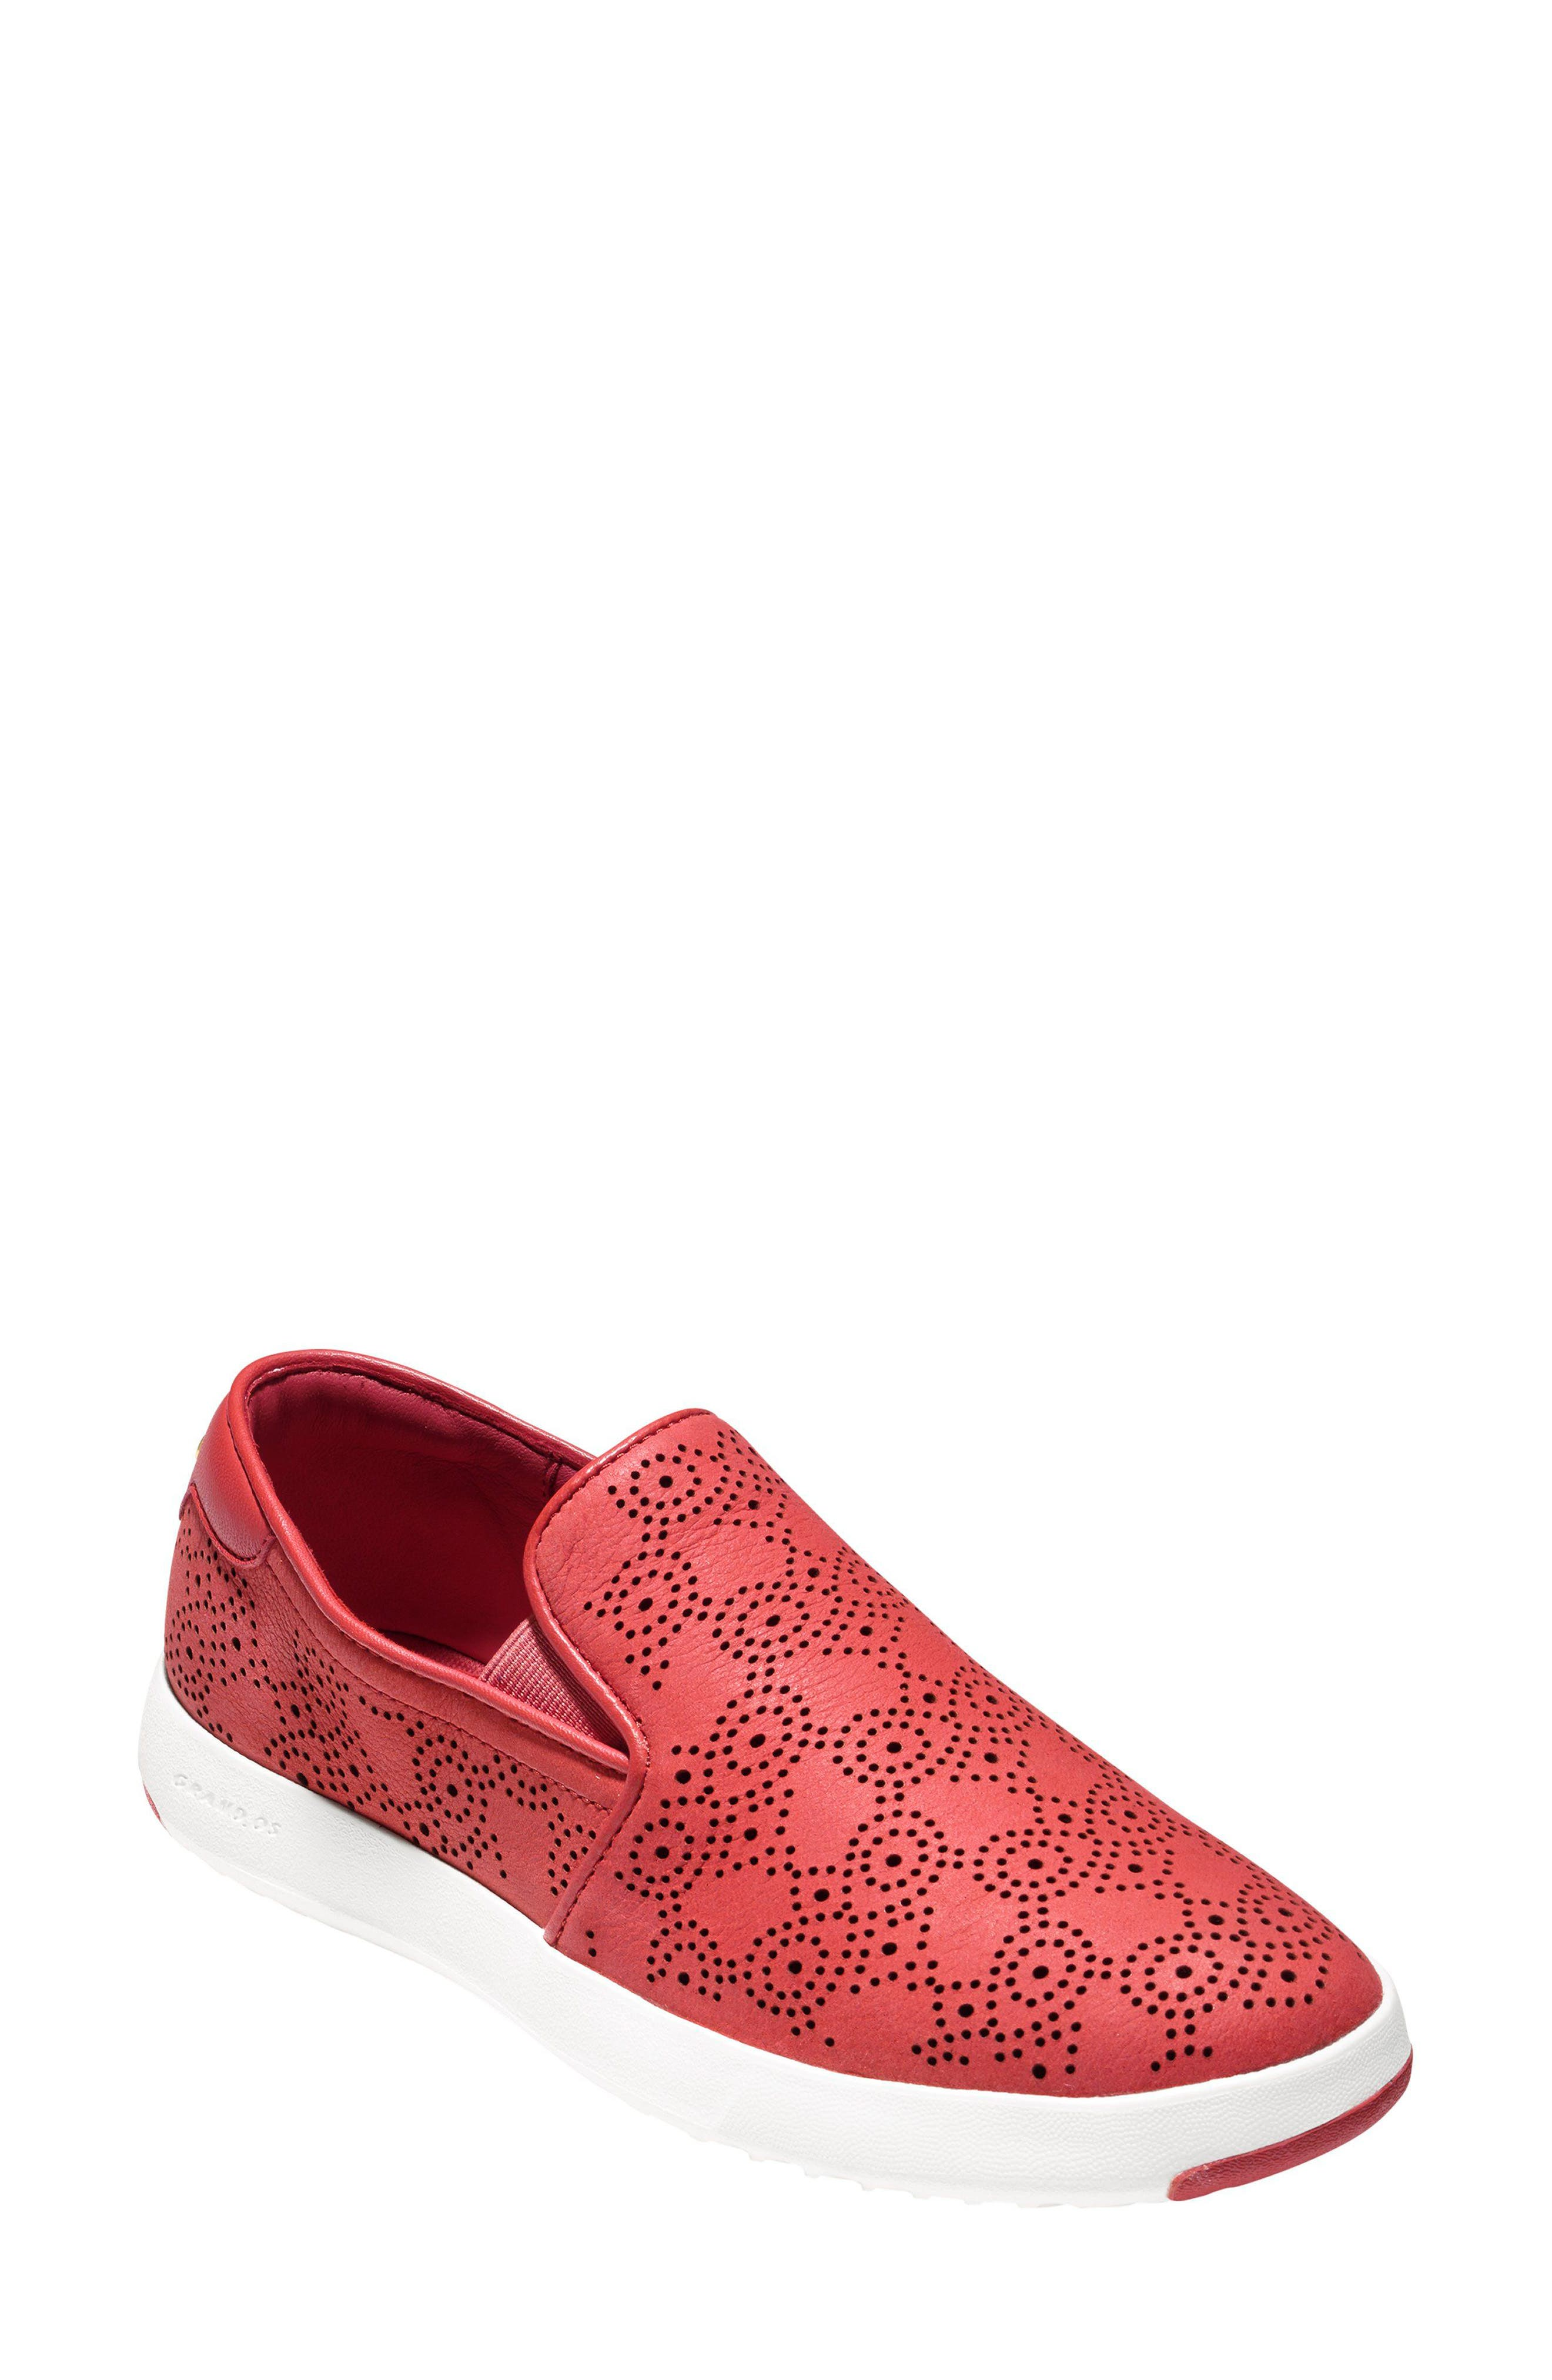 GrandPro Perforated Slip-On Sneaker,                             Main thumbnail 2, color,